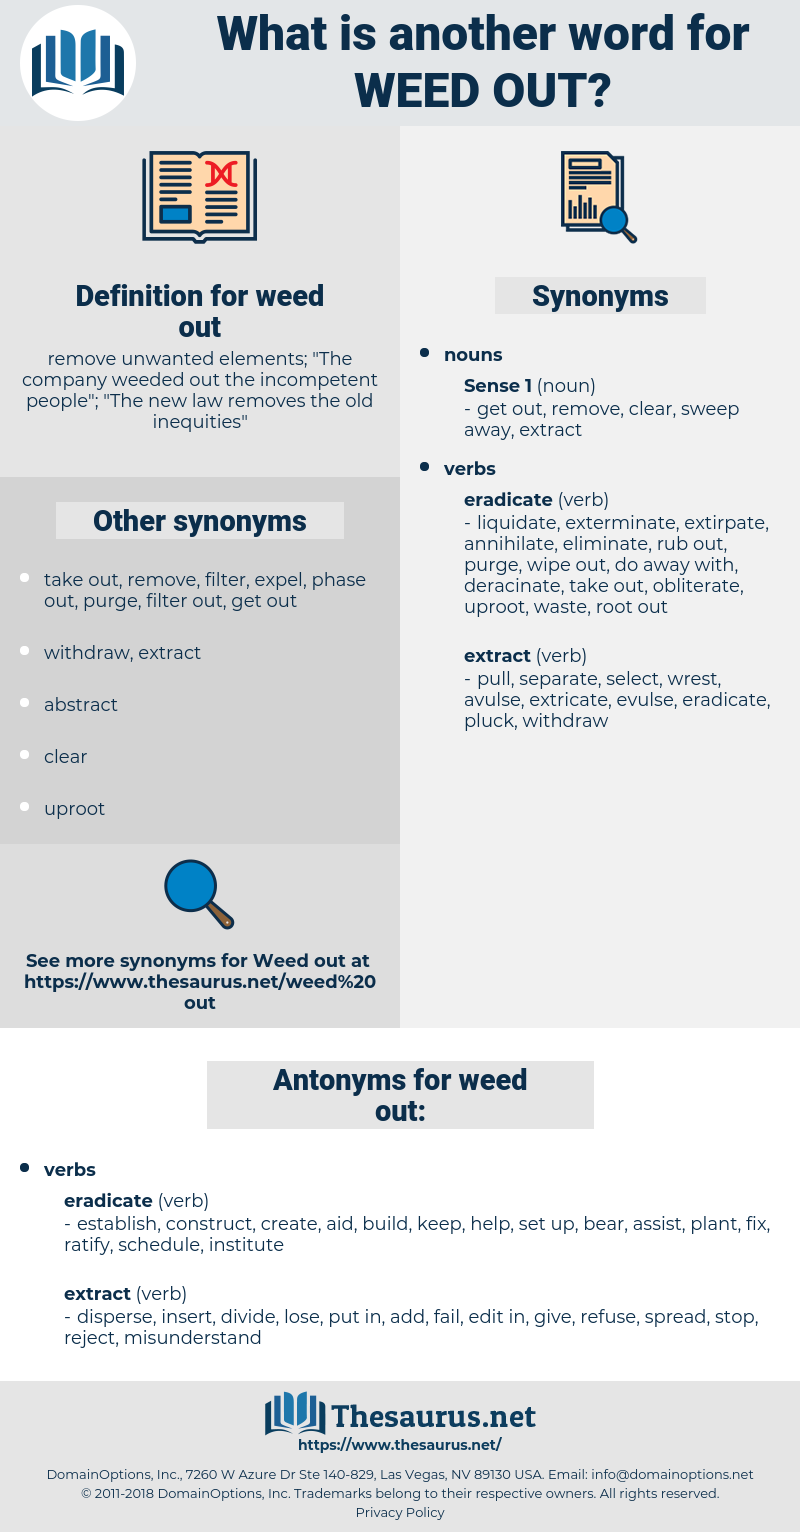 weed out, synonym weed out, another word for weed out, words like weed out, thesaurus weed out